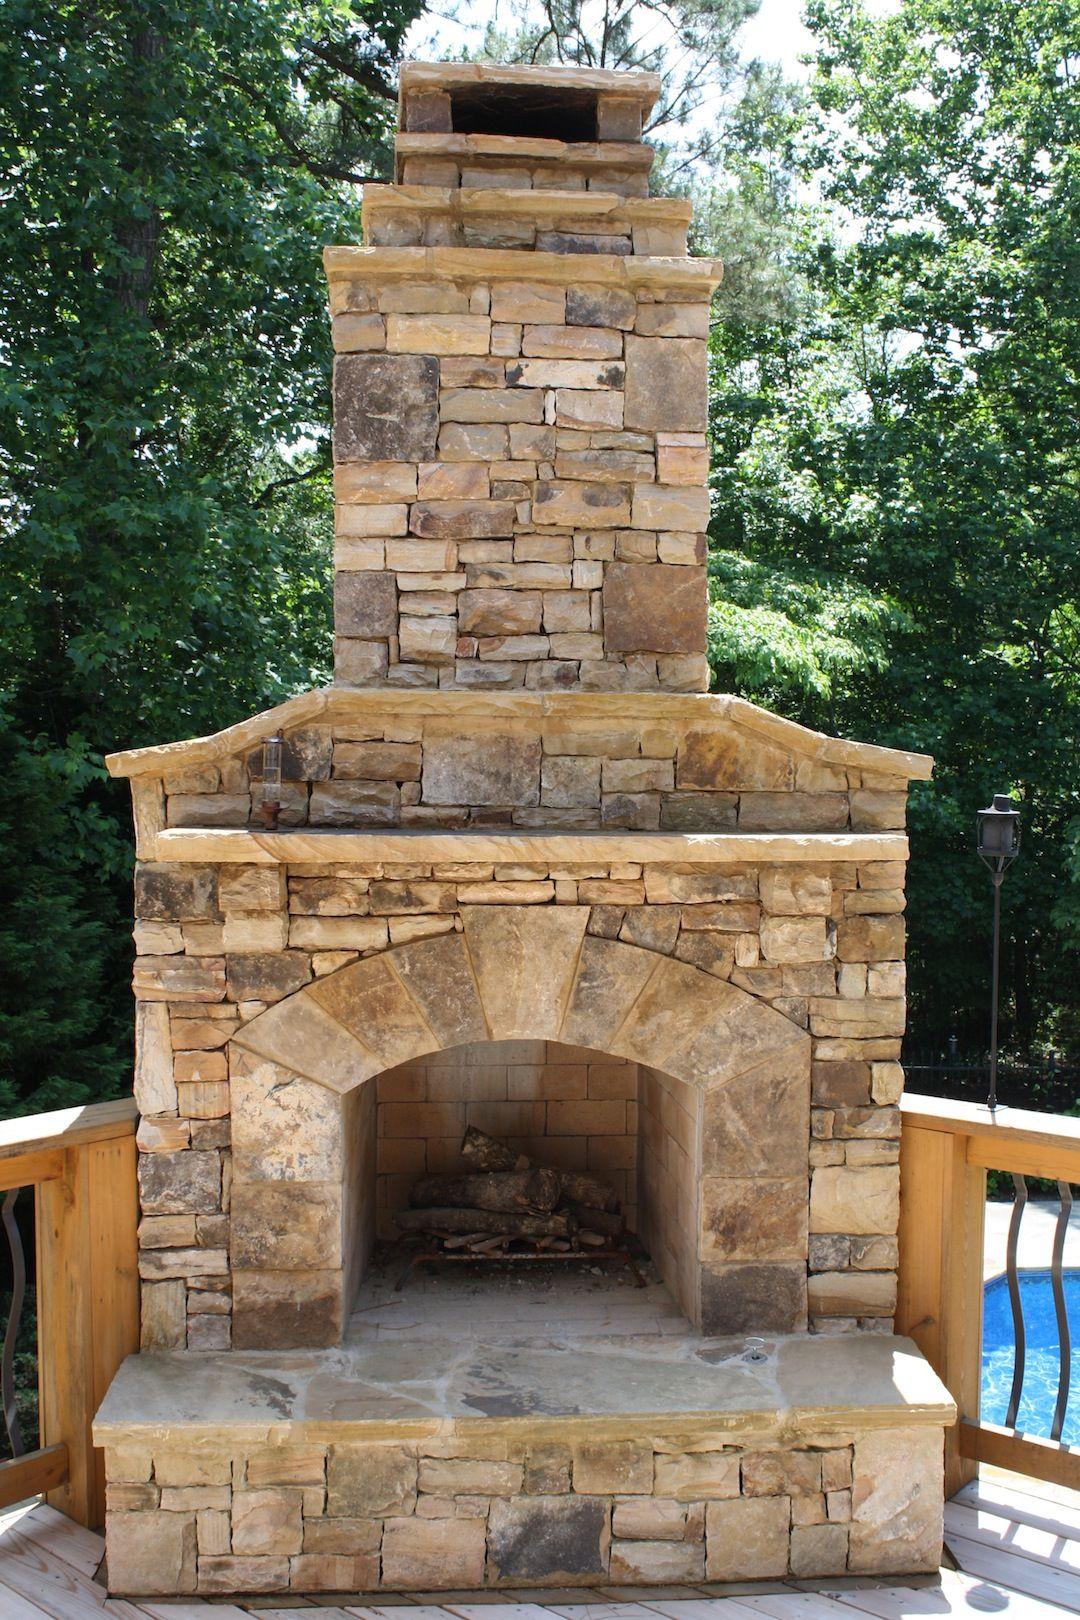 Outdoor Fireplace Contractors Outdoor Stone Fireplace On Wood Deck Pool Heaters In